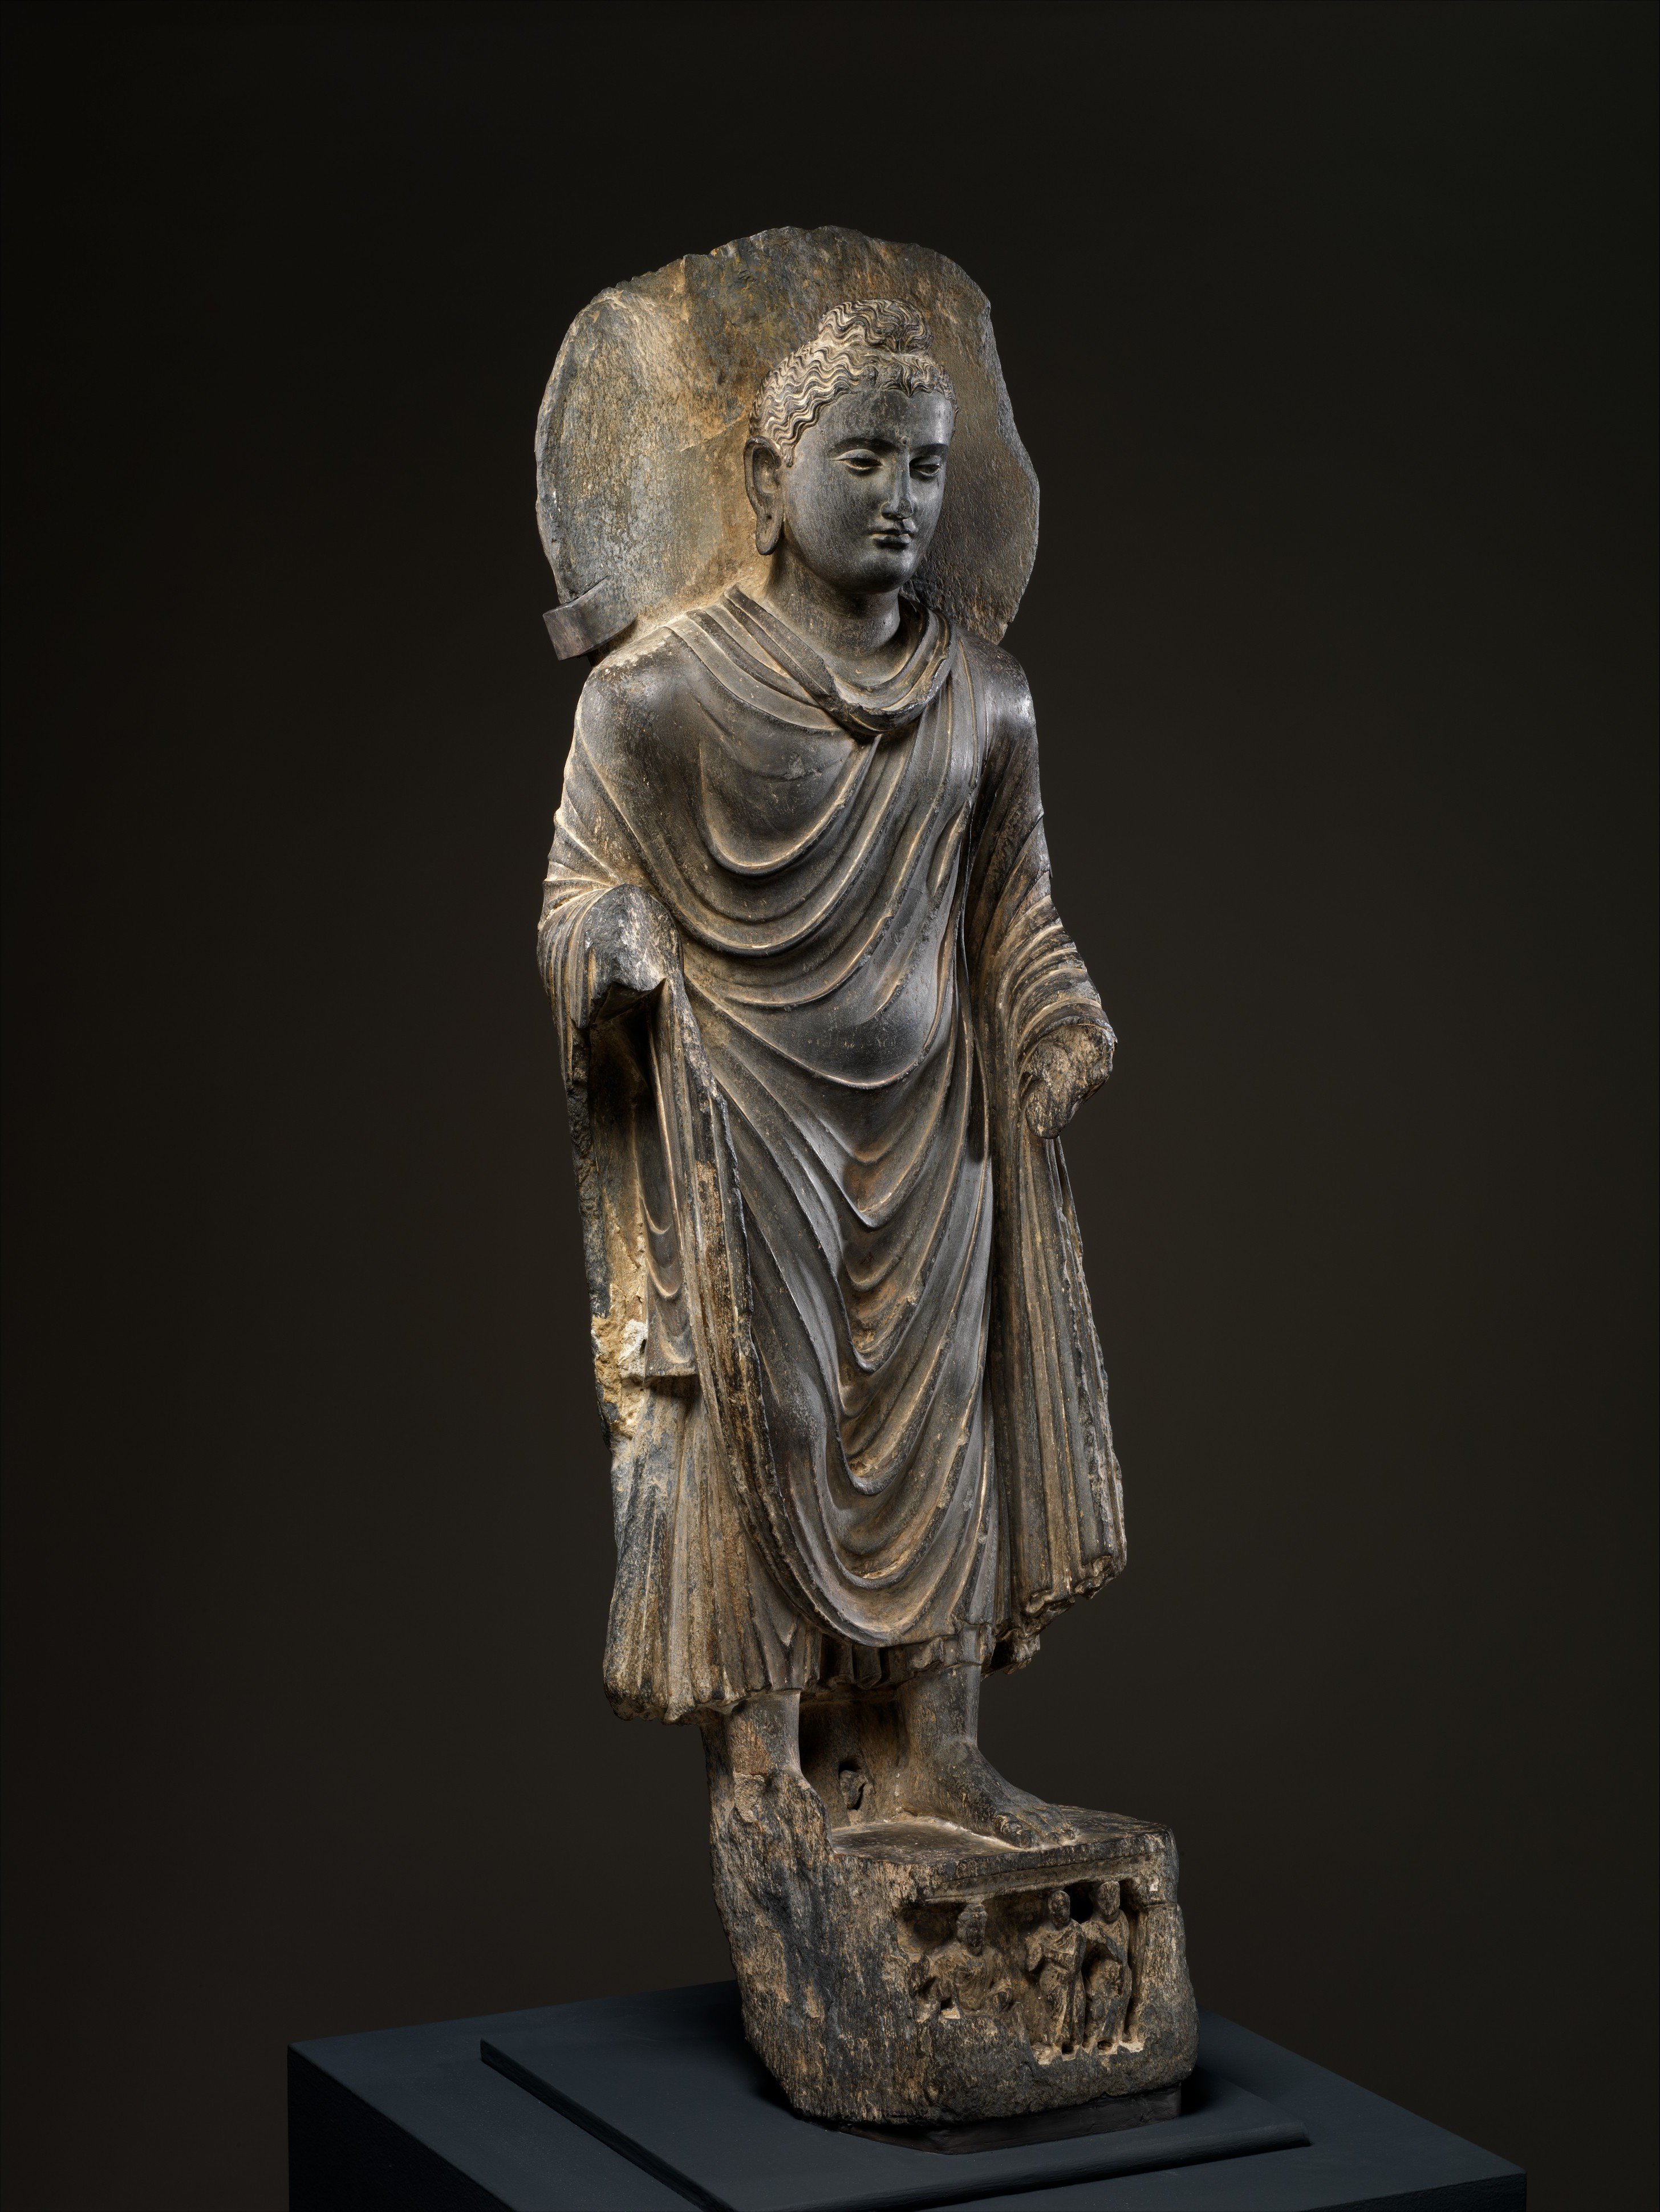 Buddha, 3rd century Pakistan, Khyber-Pakhtunkhwa province, Schist; H. 36 1/2 in. (92.7 cm); W. 11 in. (27.9 cm); D. 5 1/2 in. (14 cm) The Metropolitan Museum of Art, New York, Purchase, Denise and Andrew Saul Gift, in honor of Maxwell K. Hearn, 2014 (2014.188) http://www.metmuseum.org/Collections/search-the-collections/646117